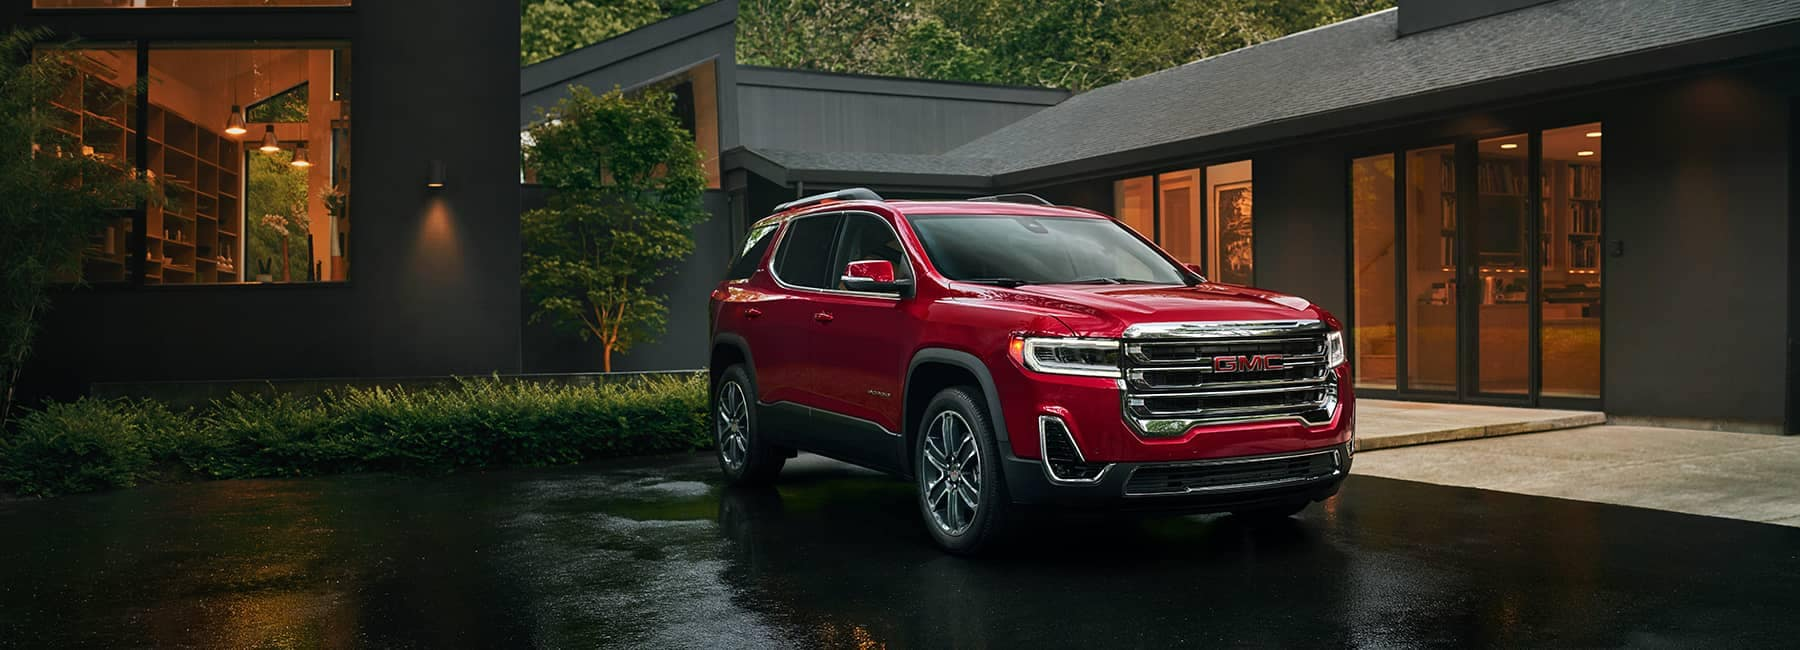 Red 2020 GMC Acadia - parked outside a nice looking suburban home